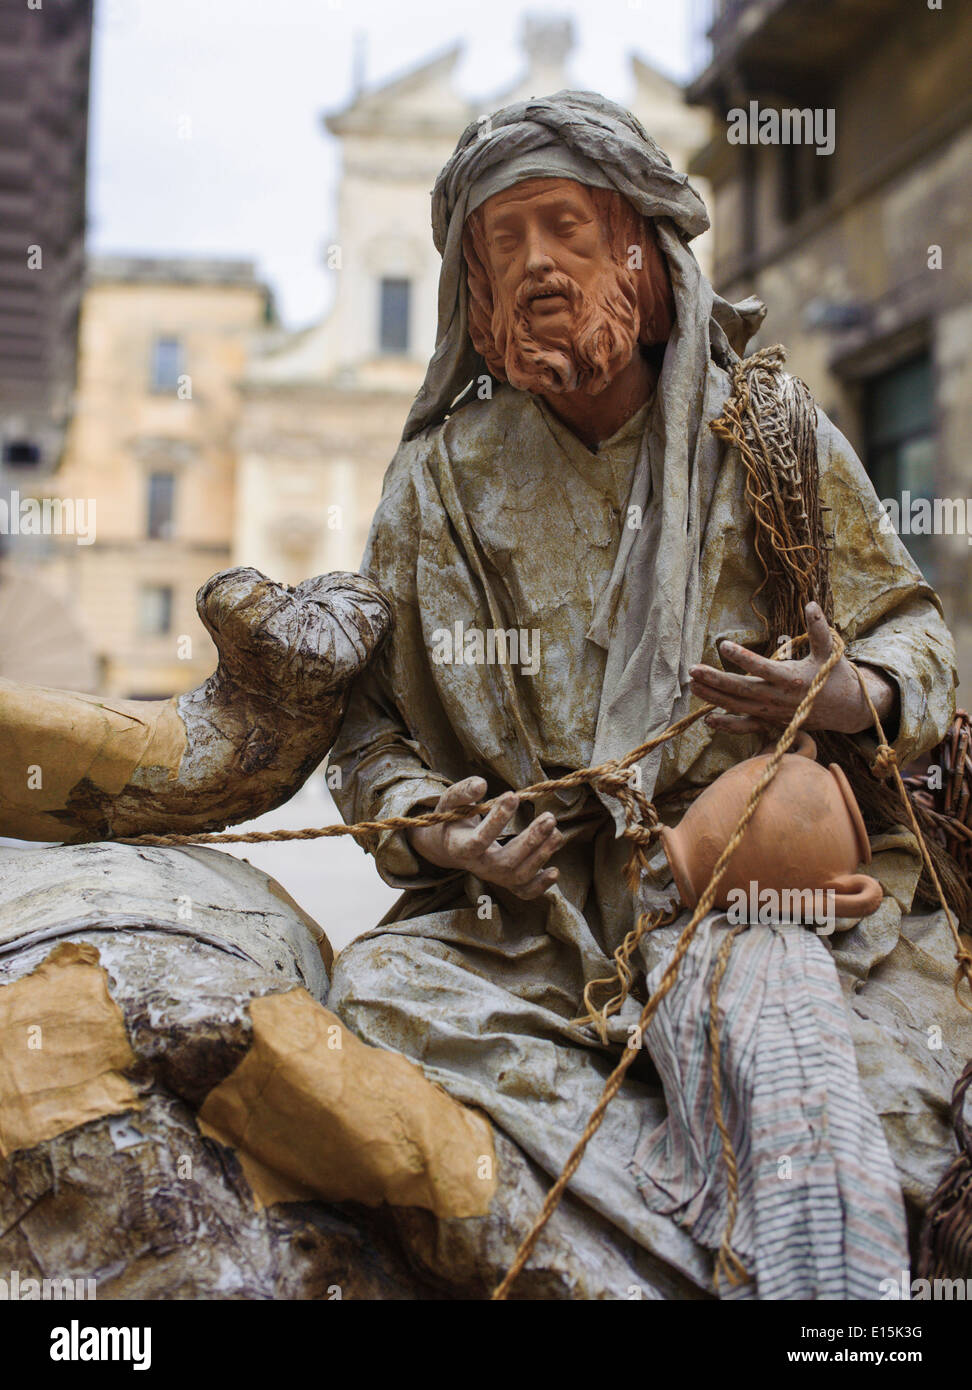 papier-mâché figures in Lecce Italy - Stock Image